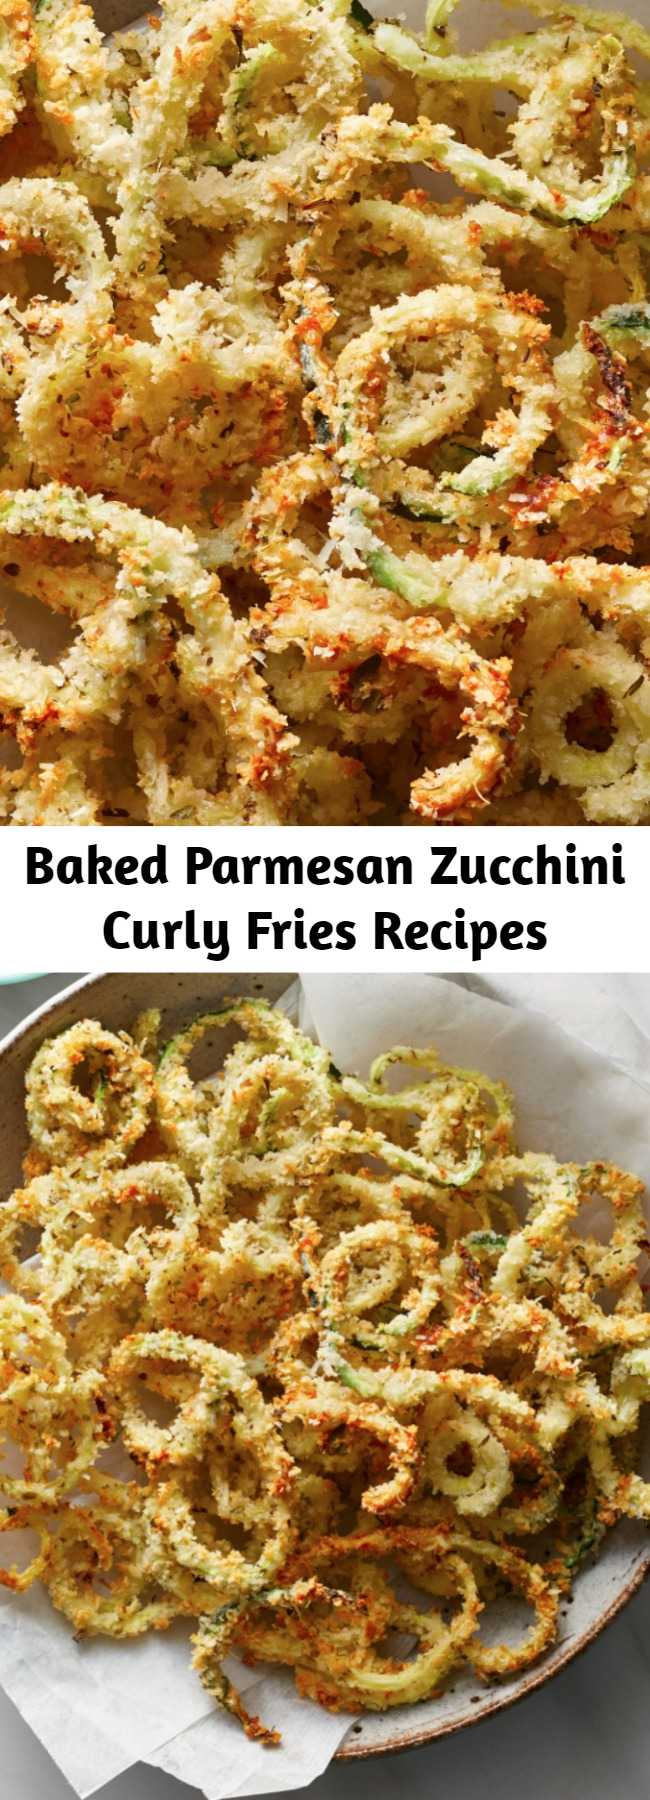 Baked Parmesan Zucchini Curly Fries Recipes - This healthy recipe combines two bar food favorites--fried zucchini and curly fries--into one tempting package. No matter what you serve them with, they're a fun way to eat more vegetables for kids and adults alike. #comfortfood #comfortfoodrecipes #healthycomfortfood #healthycomfortfoodrecipes #recipe #healthy